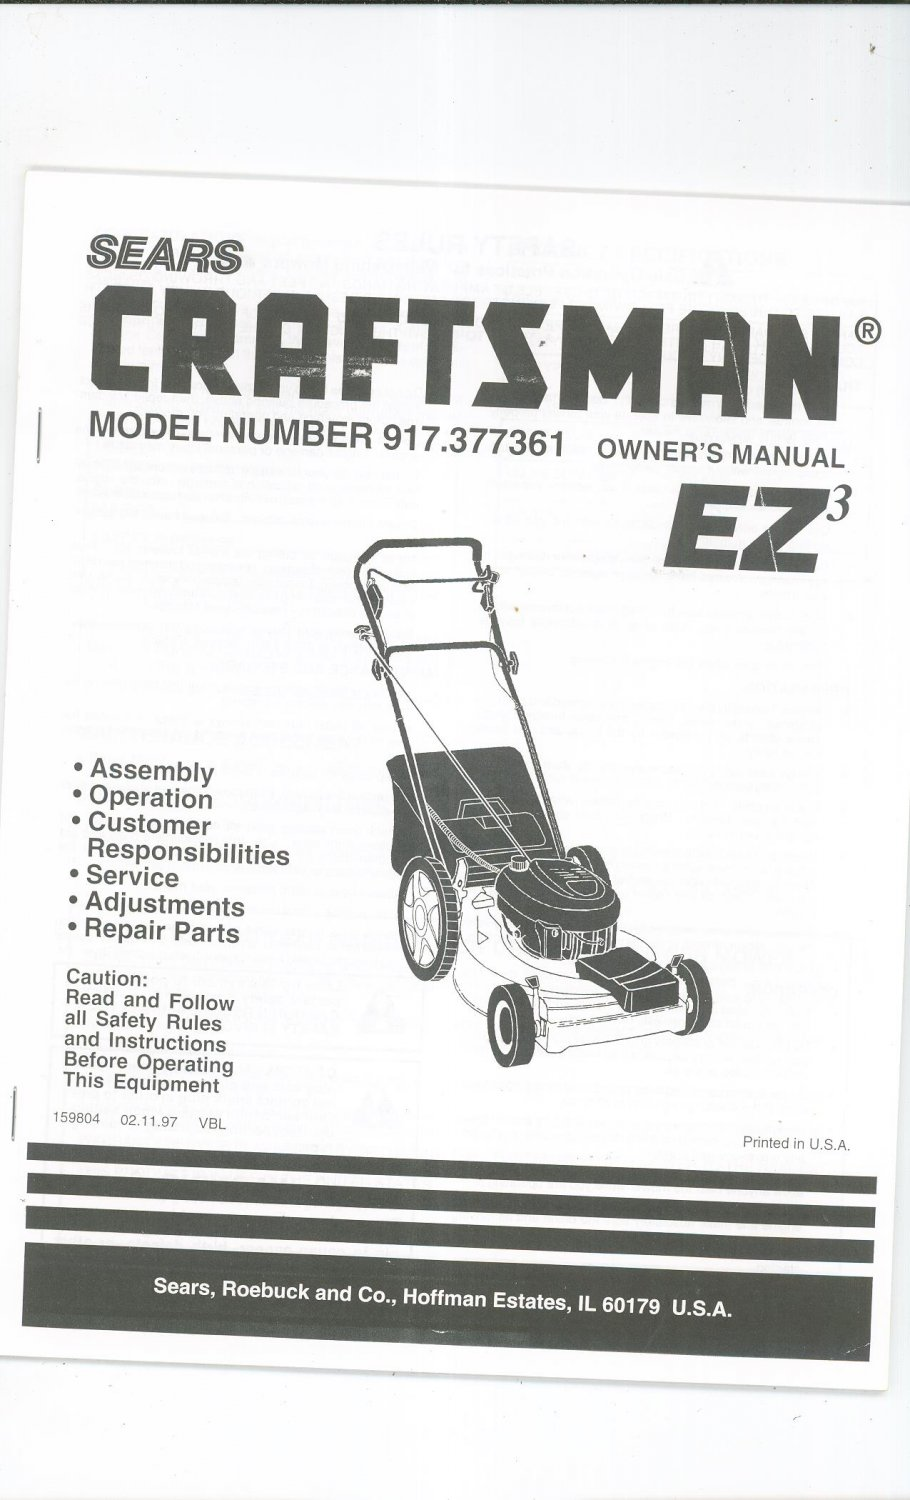 Sears Craftsman Lawn Mower EZ3 Model 917.377361 Operating